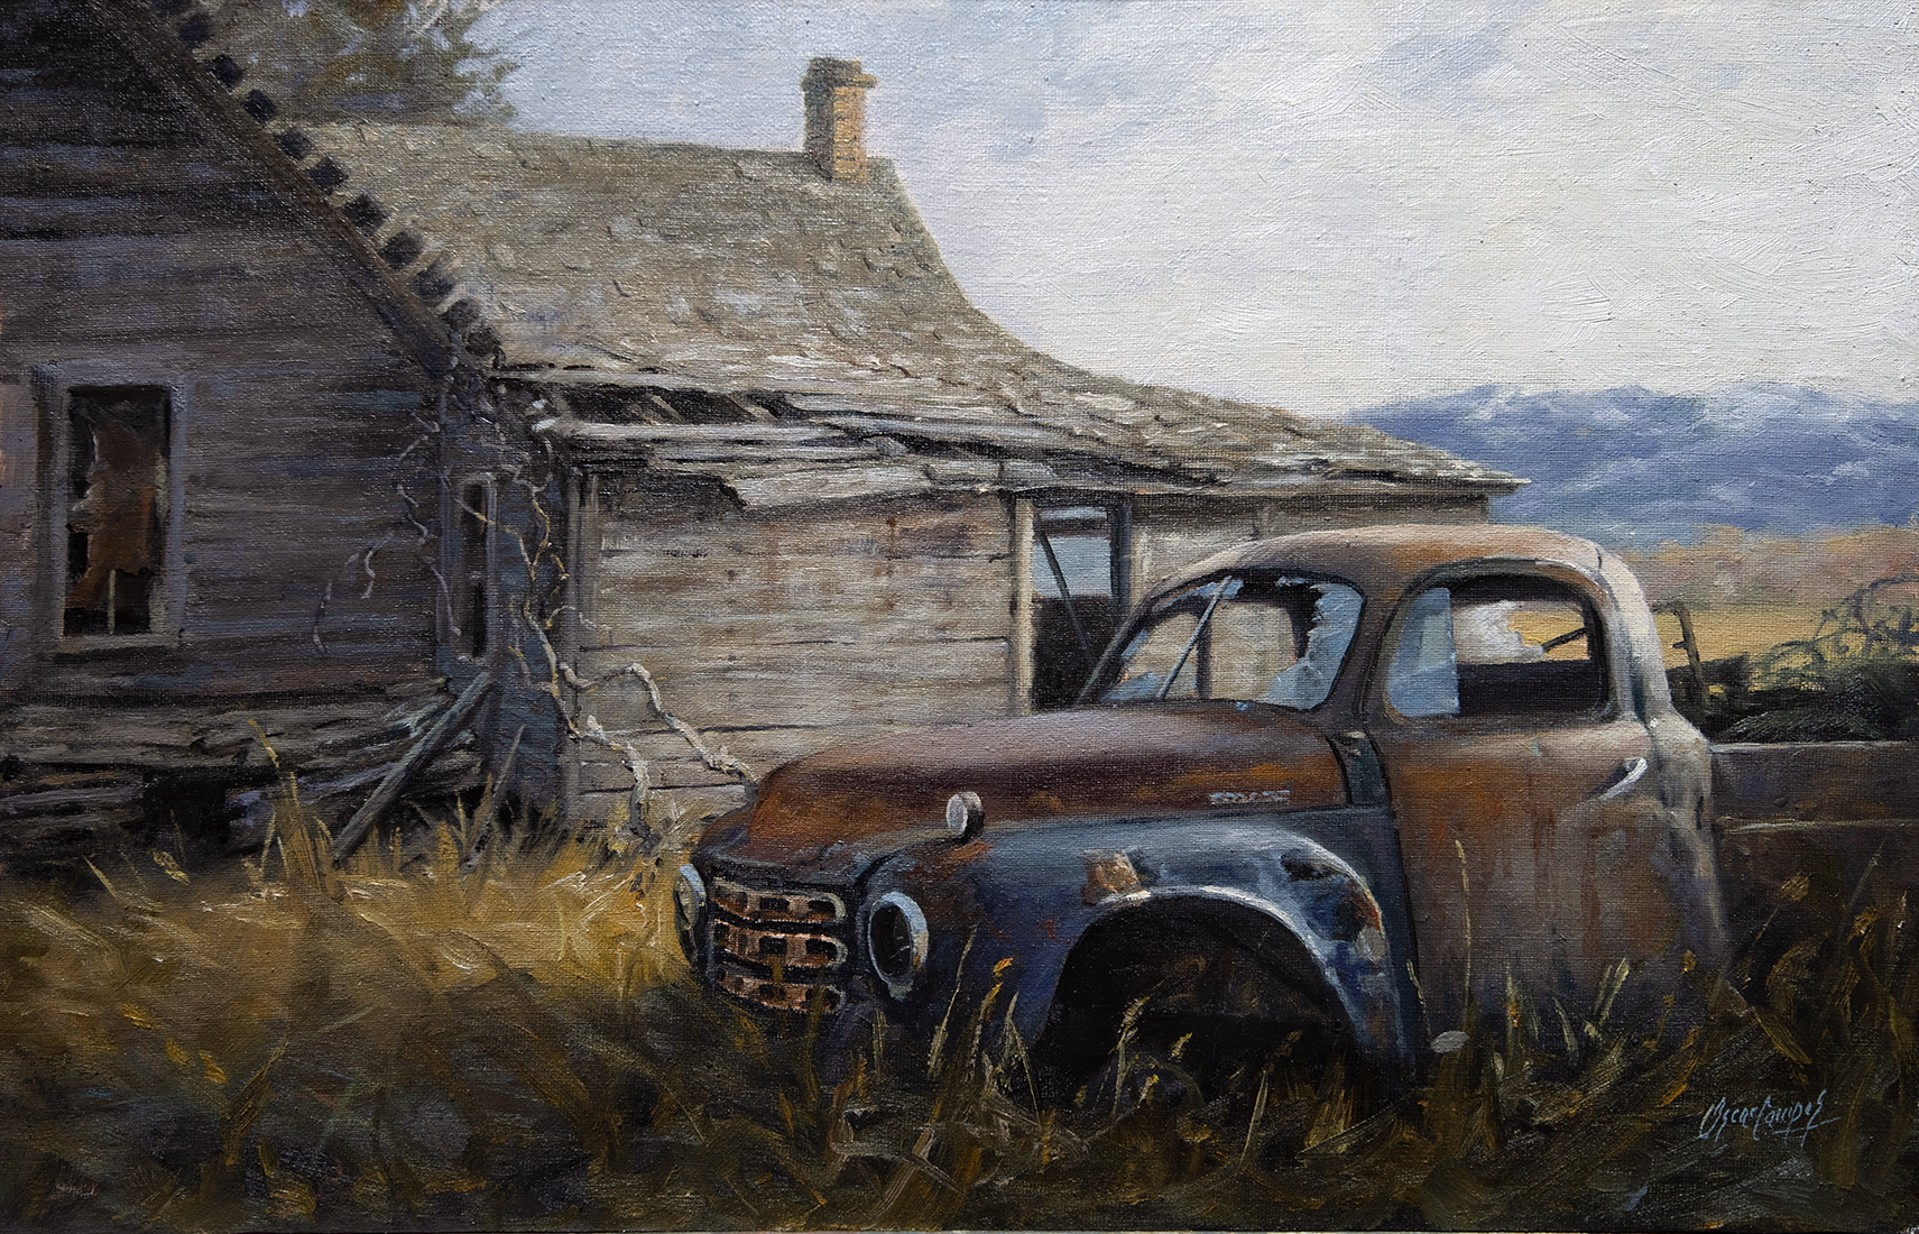 The Old Truck by Oscar Campos